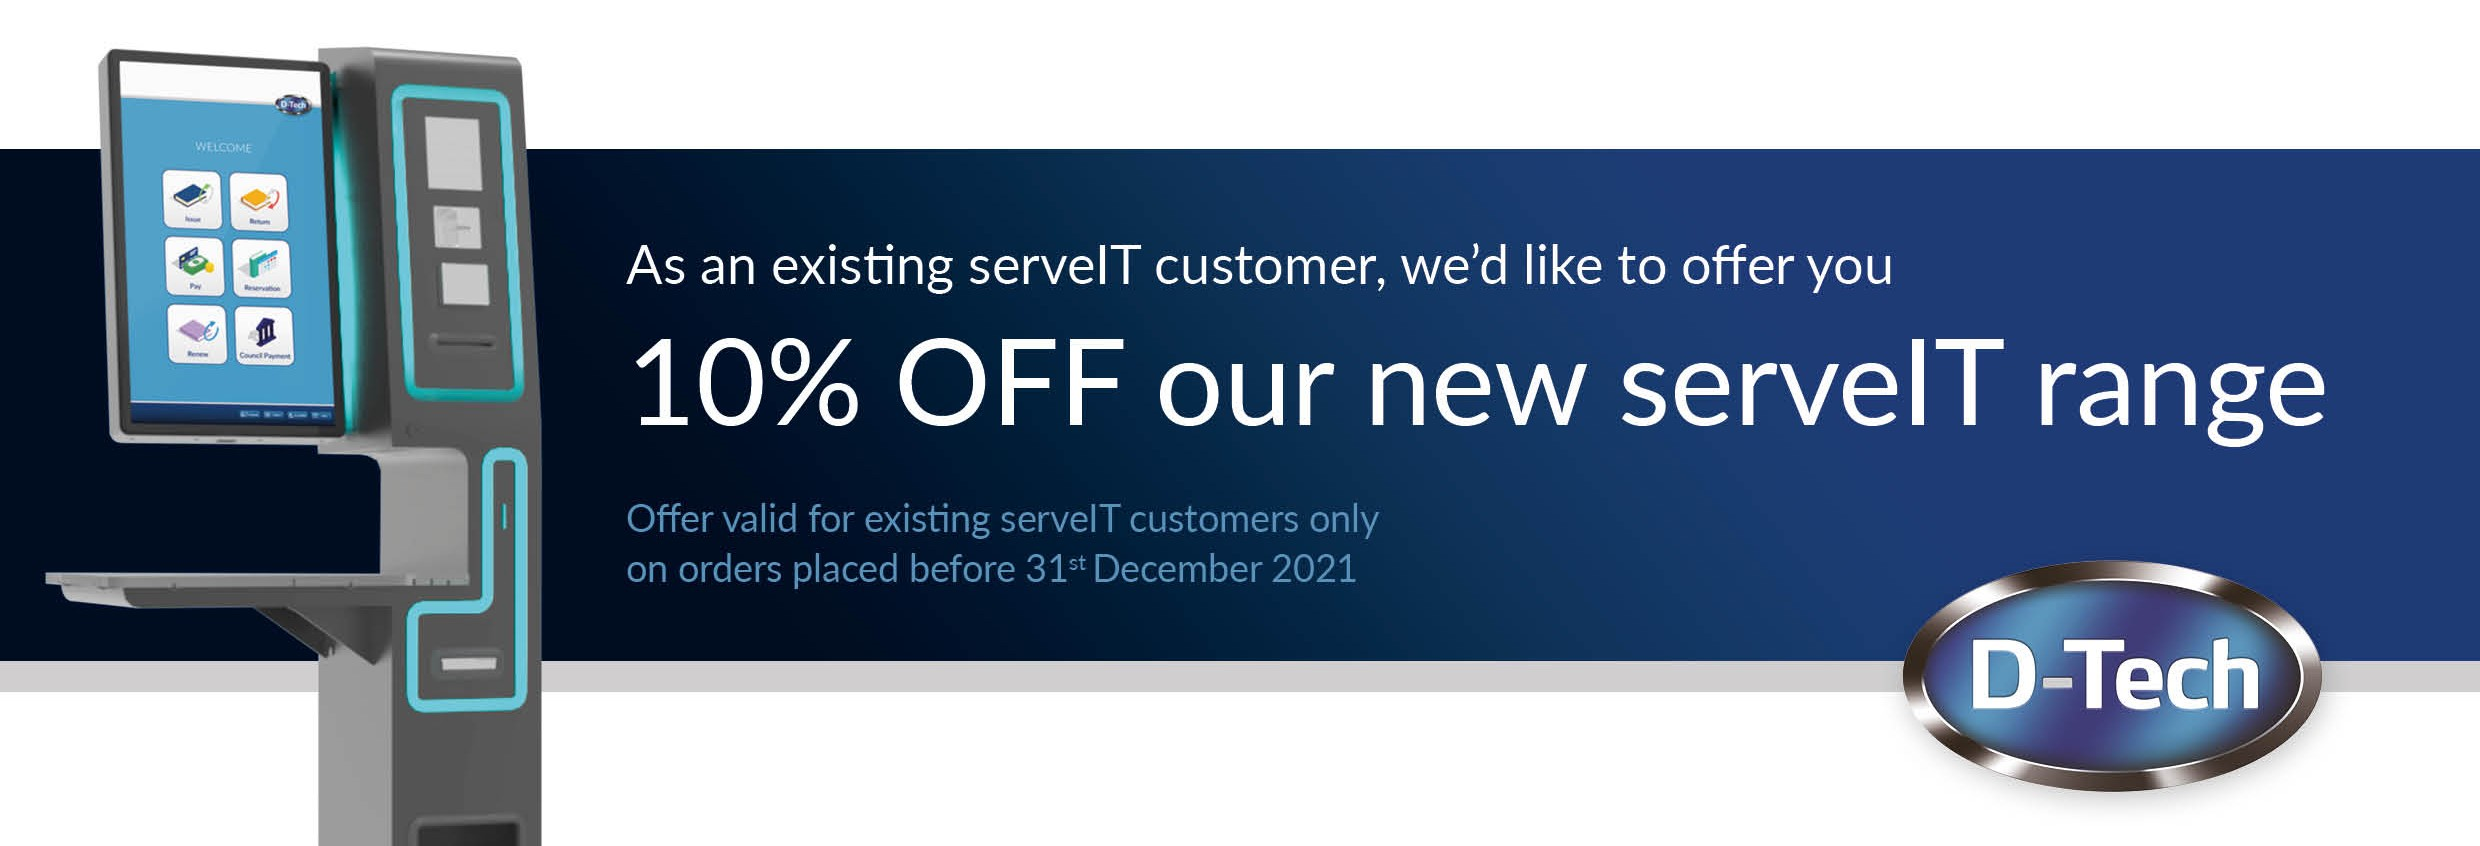 serveIT Offer Voucher